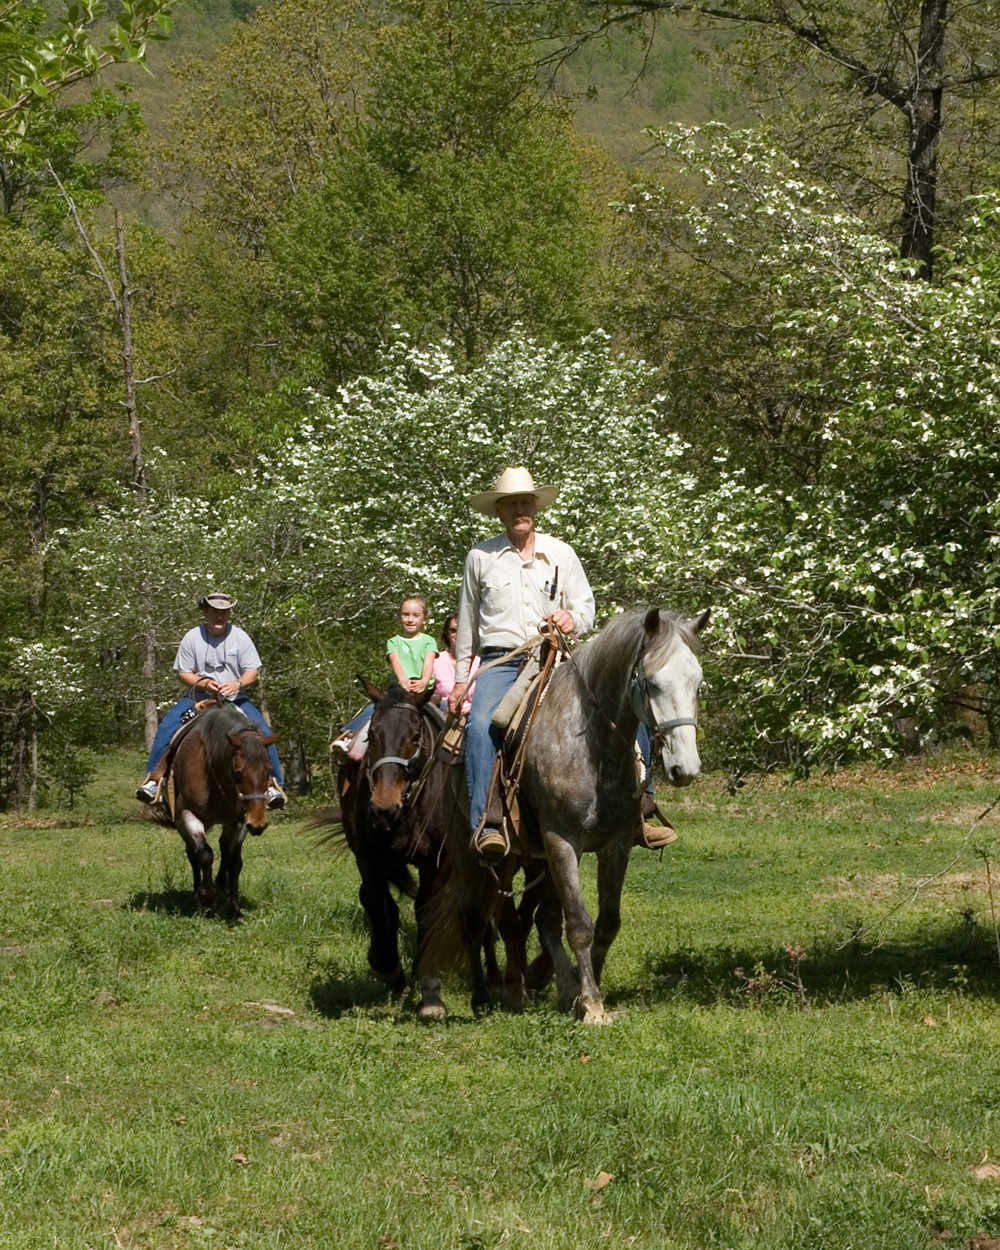 Horseback Riding at Rimrock Cove Ranch in the Spring